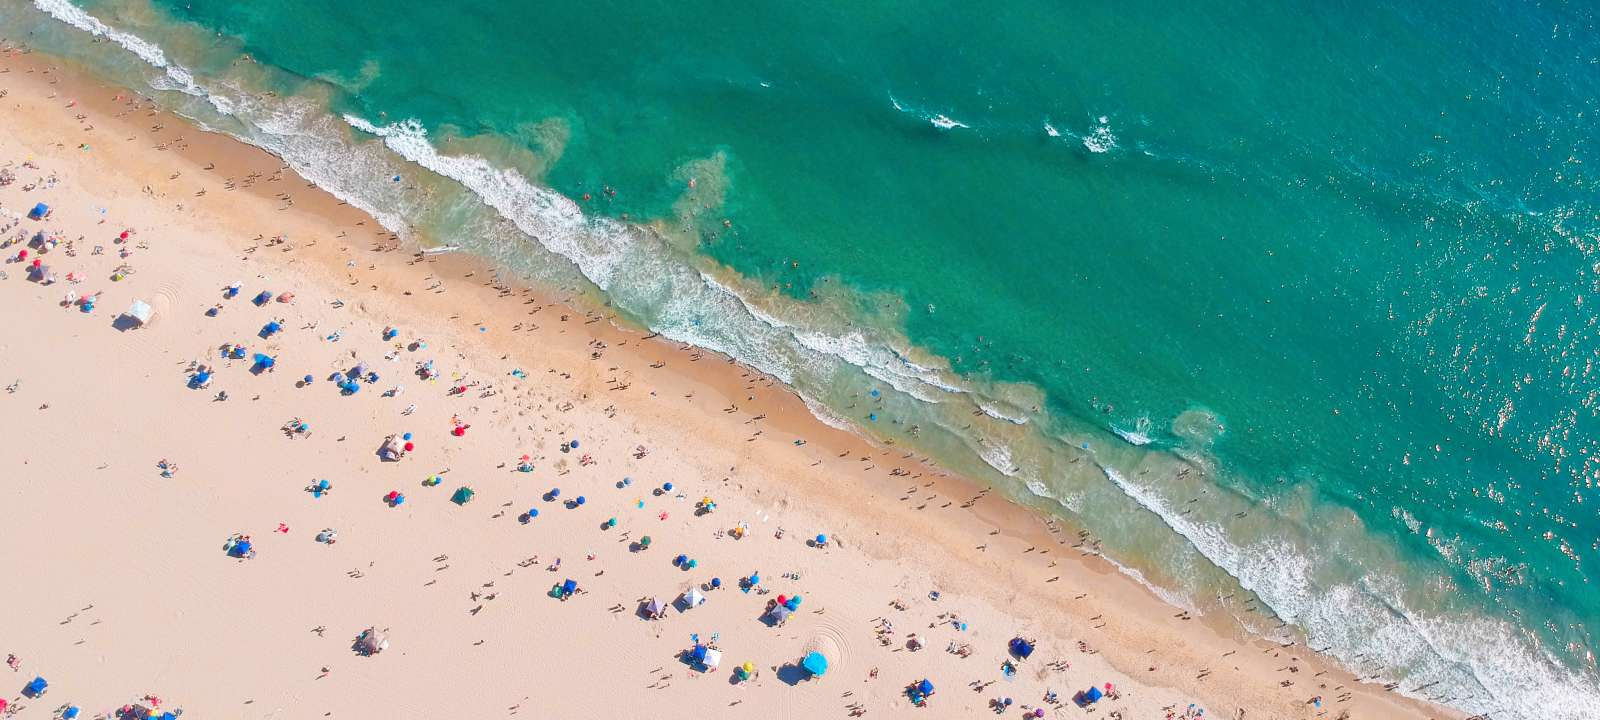 huntington beach named best california beach by usa today